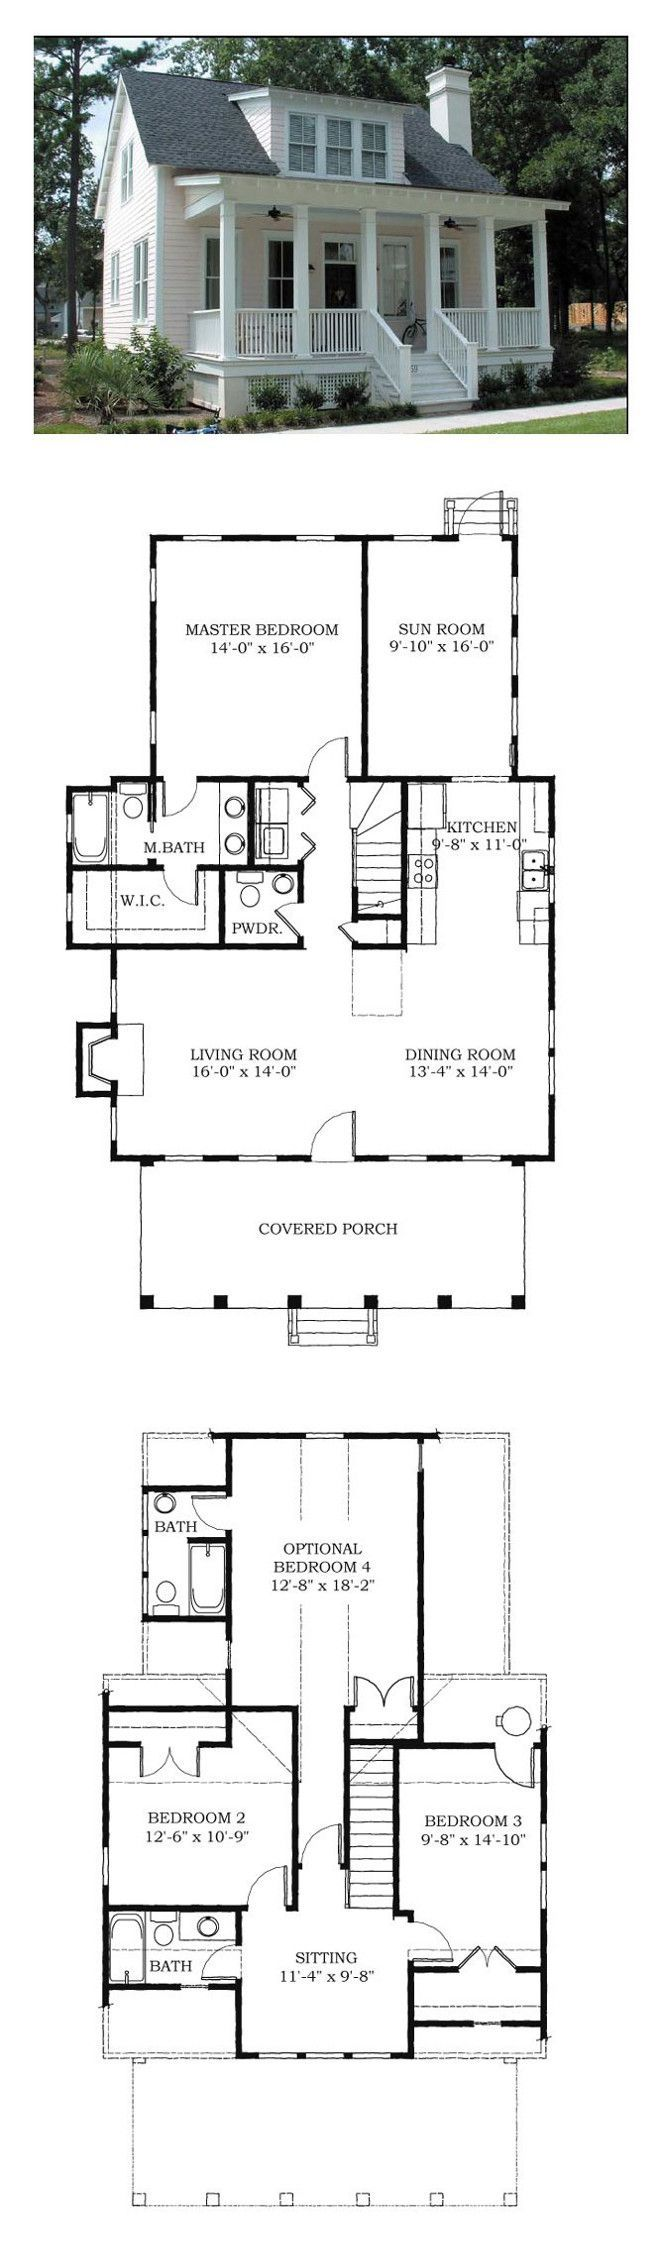 Cottage Floor Plans elegant country house small cottage country cottage floor modern cottage floor Cottage Floor Plans Via Cool House Plans